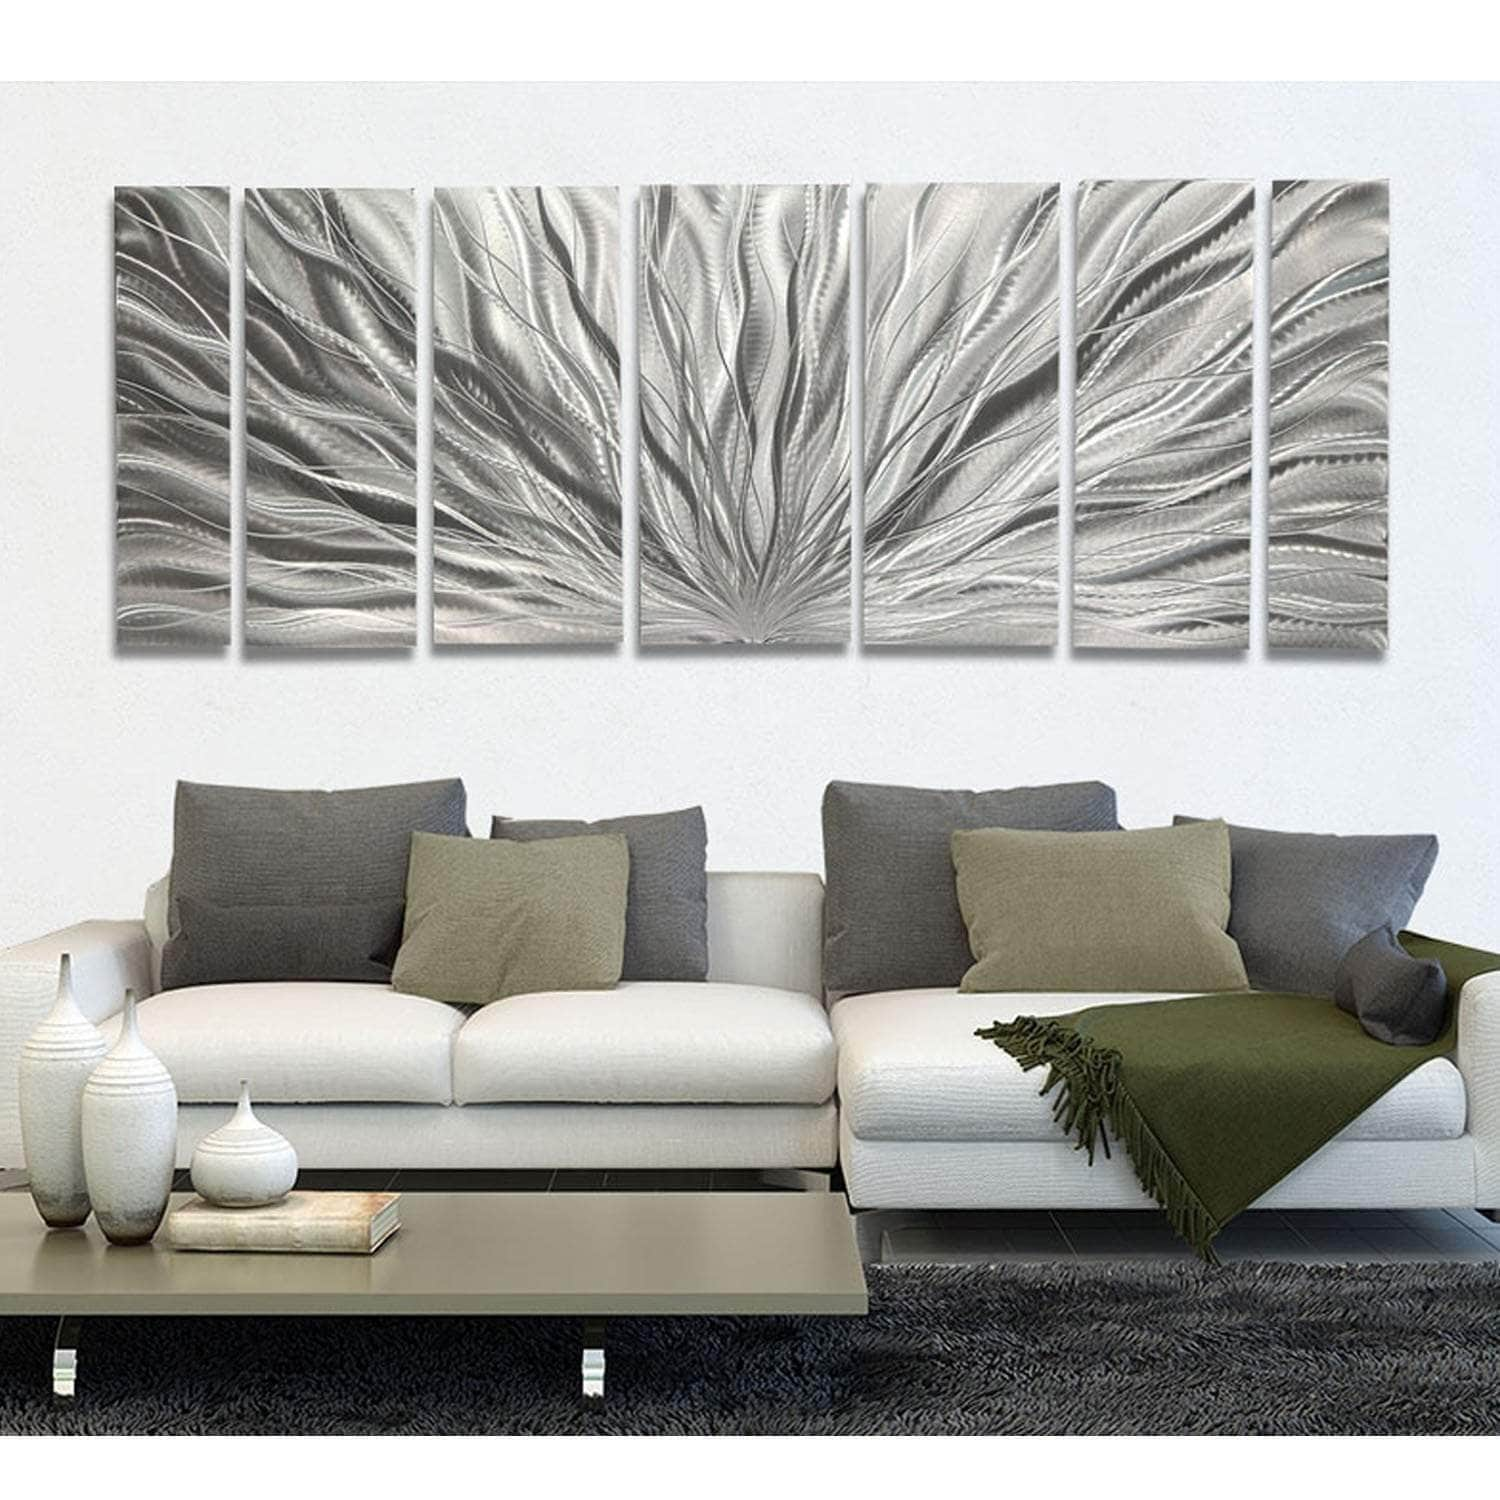 Shop Black Friday Deals On Statements2000 Modern Metal Wall Art Abstract Silver Decor By Jon Allen Silver Plumage Overstock 12447245 Silver Plumage